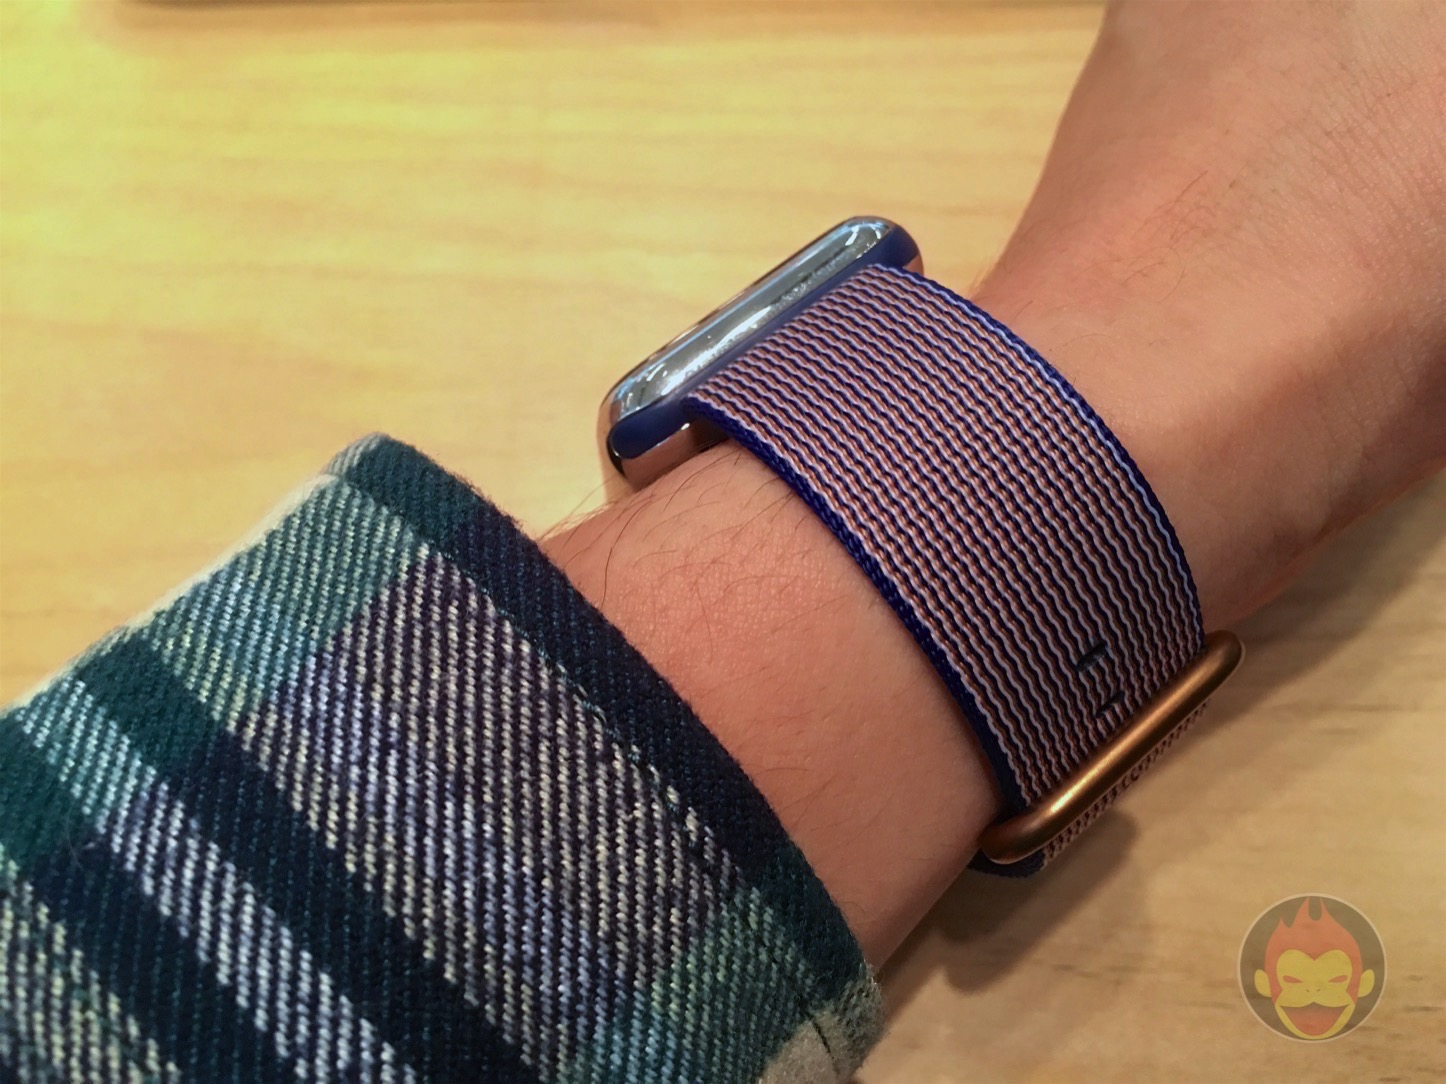 Apple-Watch-Woven-Nylon-Band-14.jpg